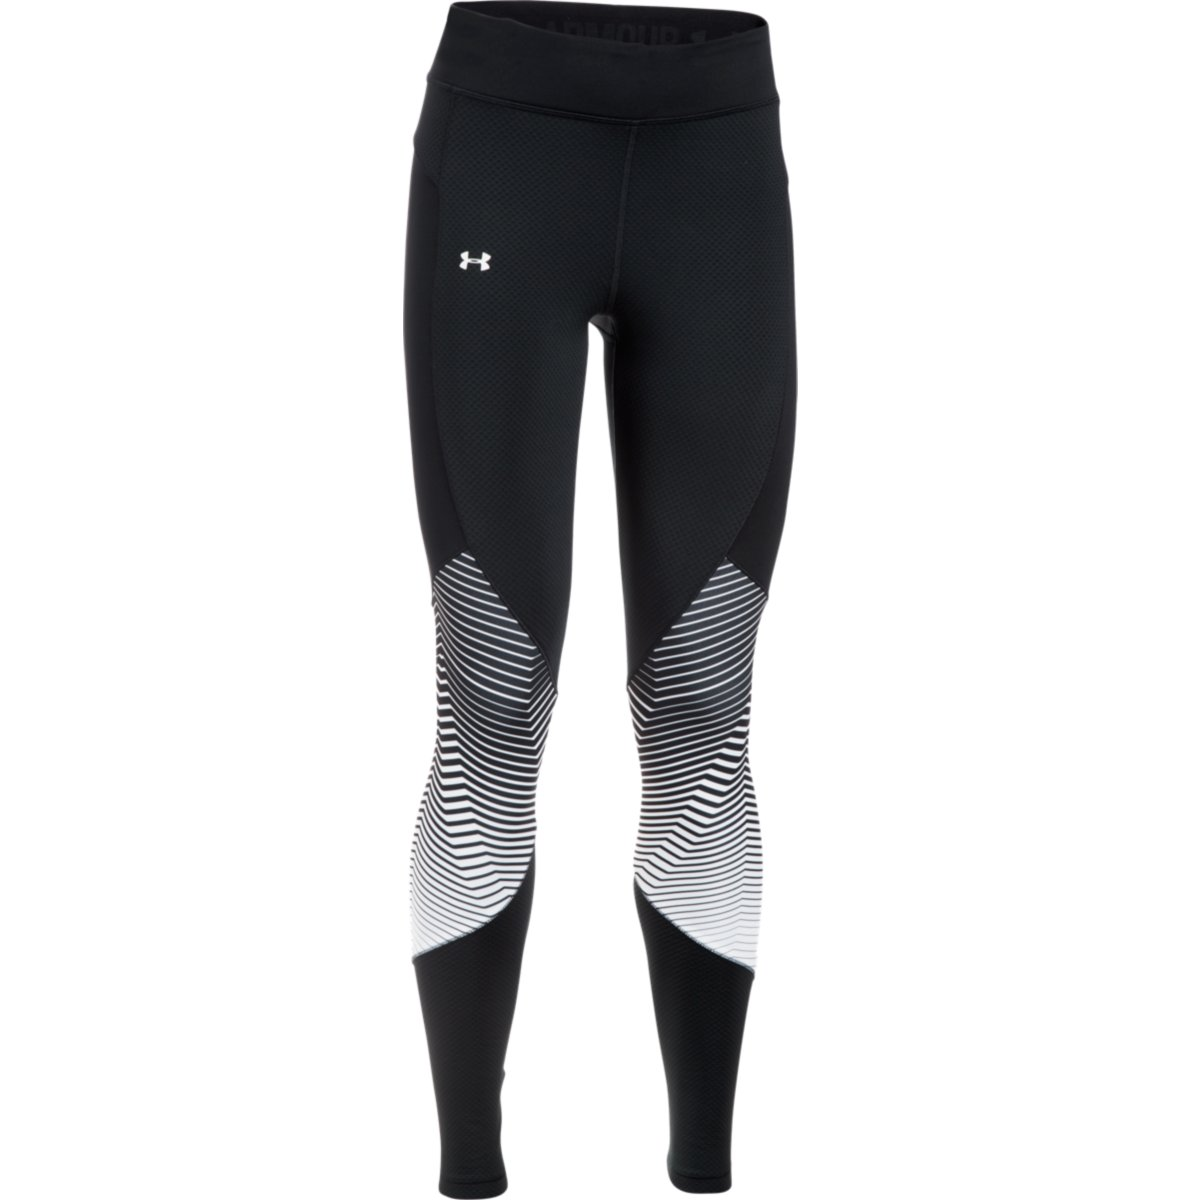 Under-Armour-Women-s-ColdGear-Reactor-Graphic-Gym-Legging -Internal-Black-AW17-1298227-001XS.jpg 0a9b6eff3a7